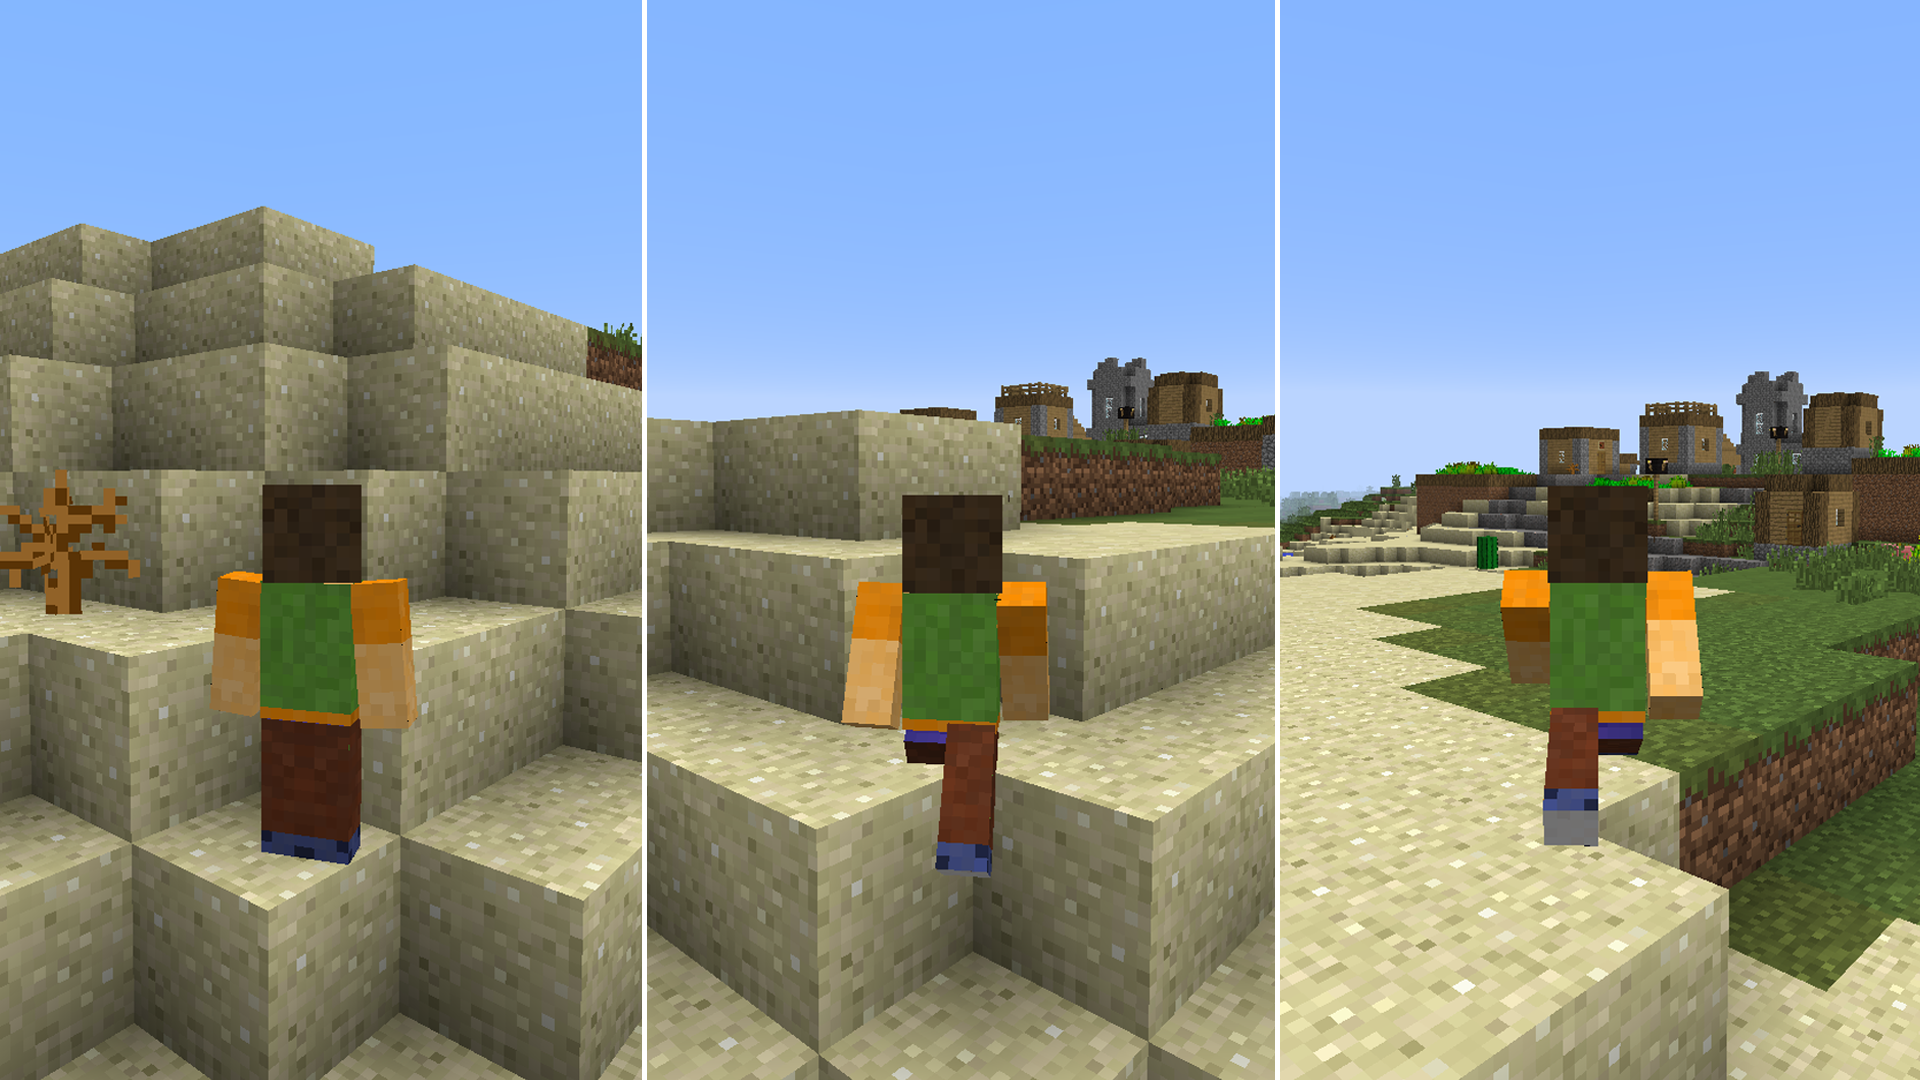 How To Craft Gravel In Minecraft